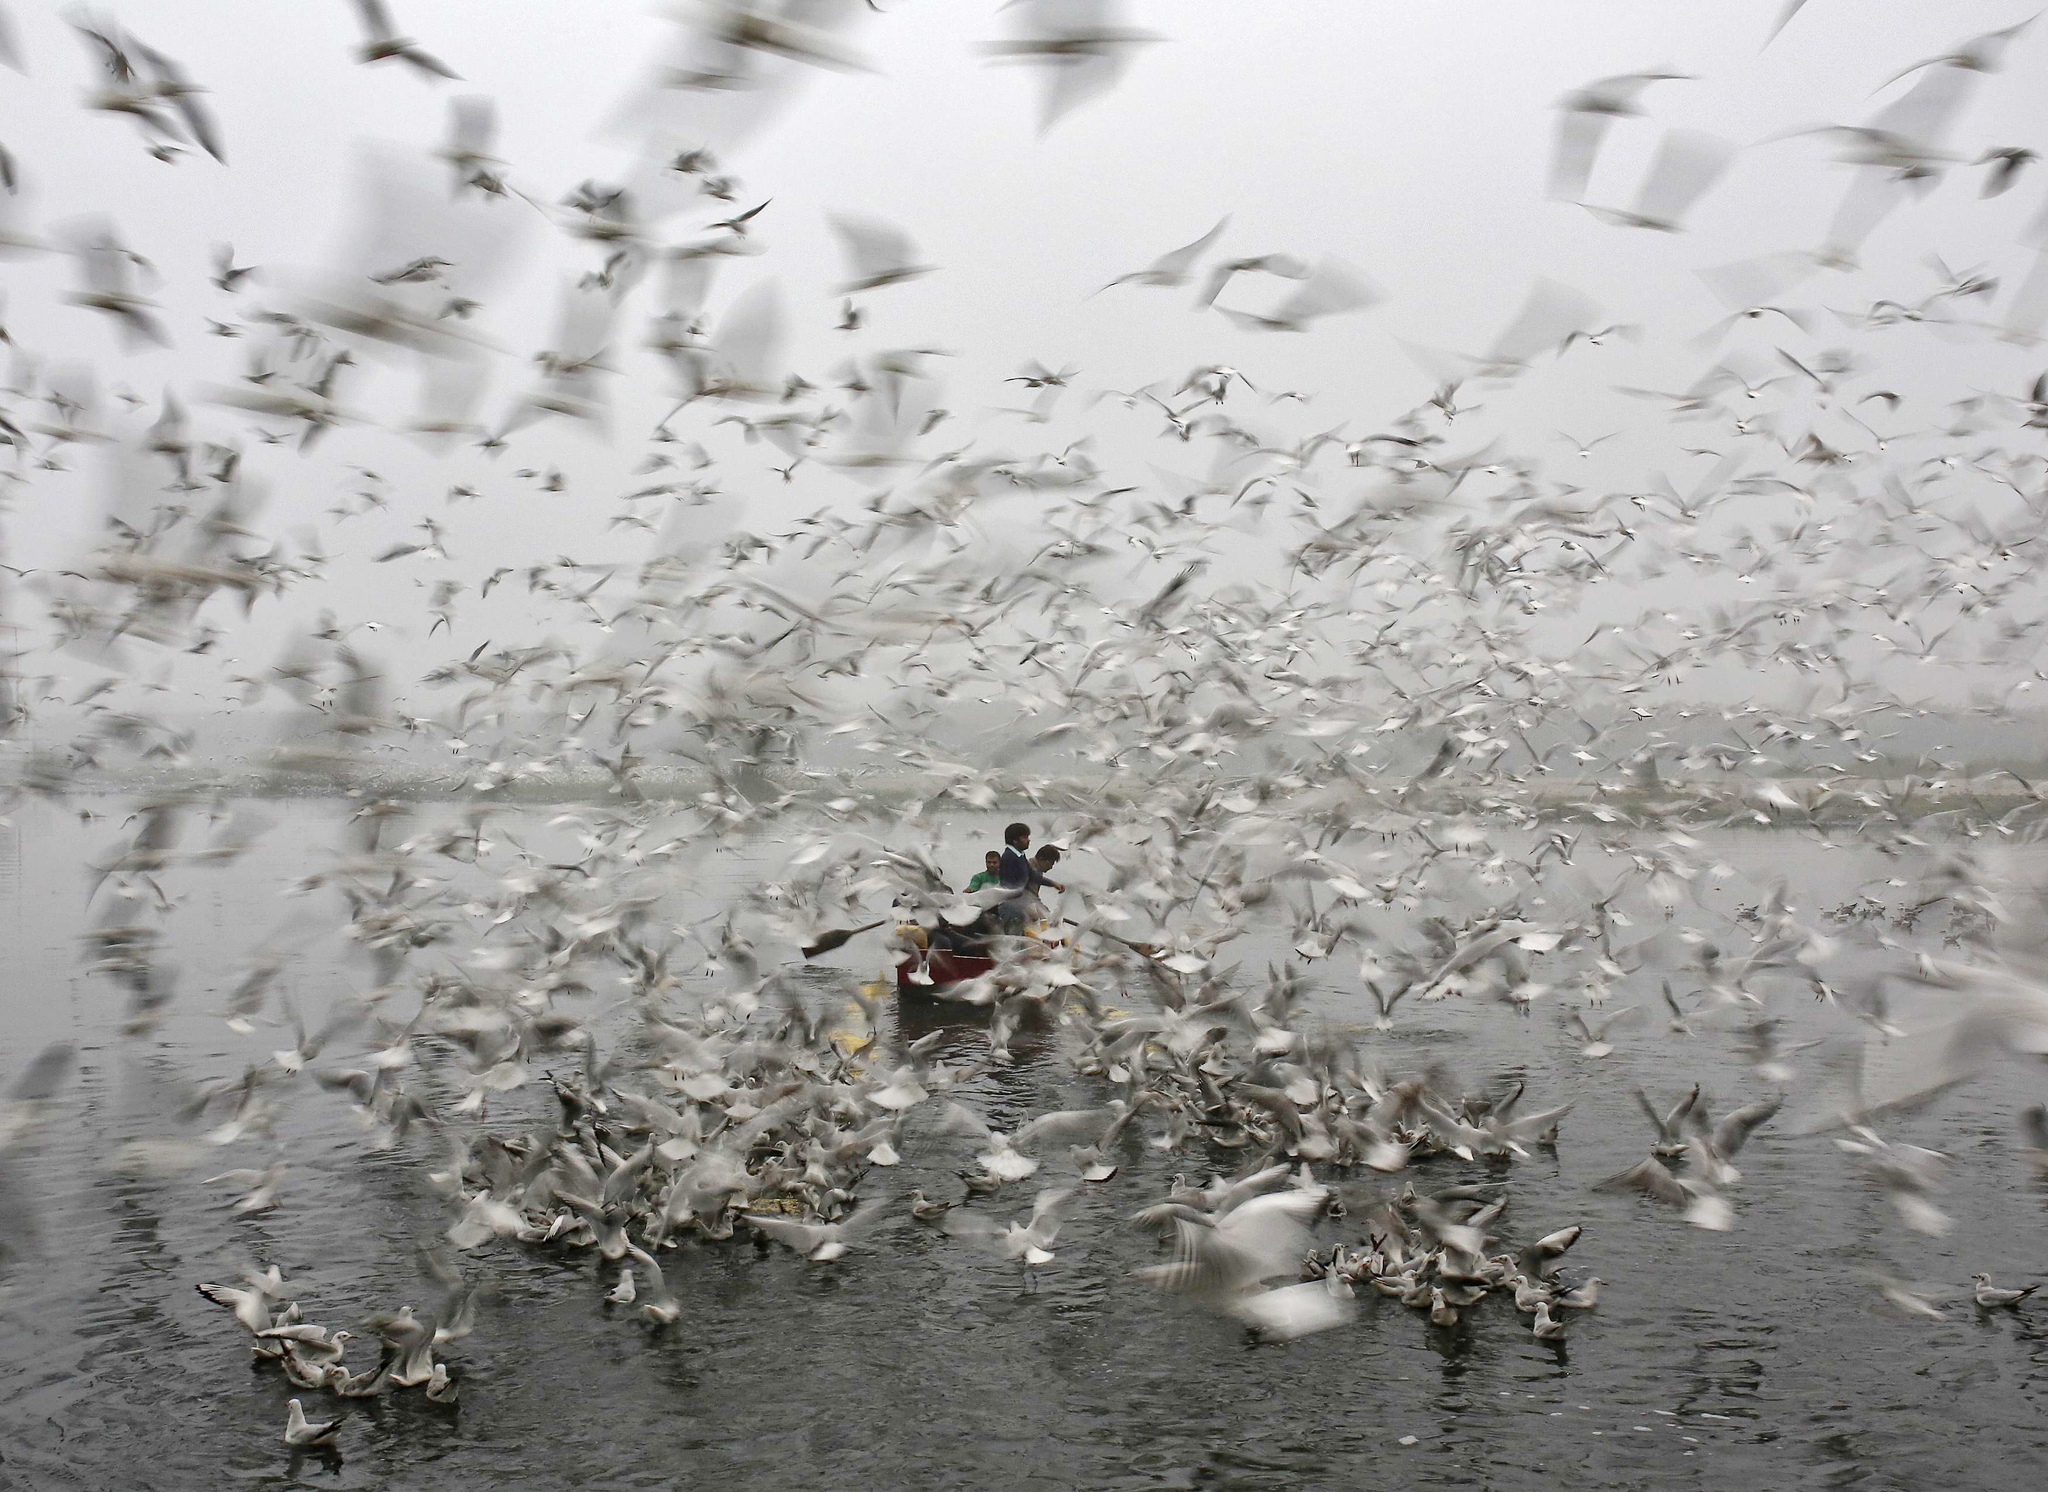 Men ride a boat as seagulls fly over the waters of the river Yamuna in New Delhi...Men ride a boat as seagulls fly over the waters of the river Yamuna on a cold, winter morning in New Delhi December 18, 2014. REUTERS/Ahmad Masood (INDIA - Tags: ANIMALS SOCIETY ENVIRONMENT)